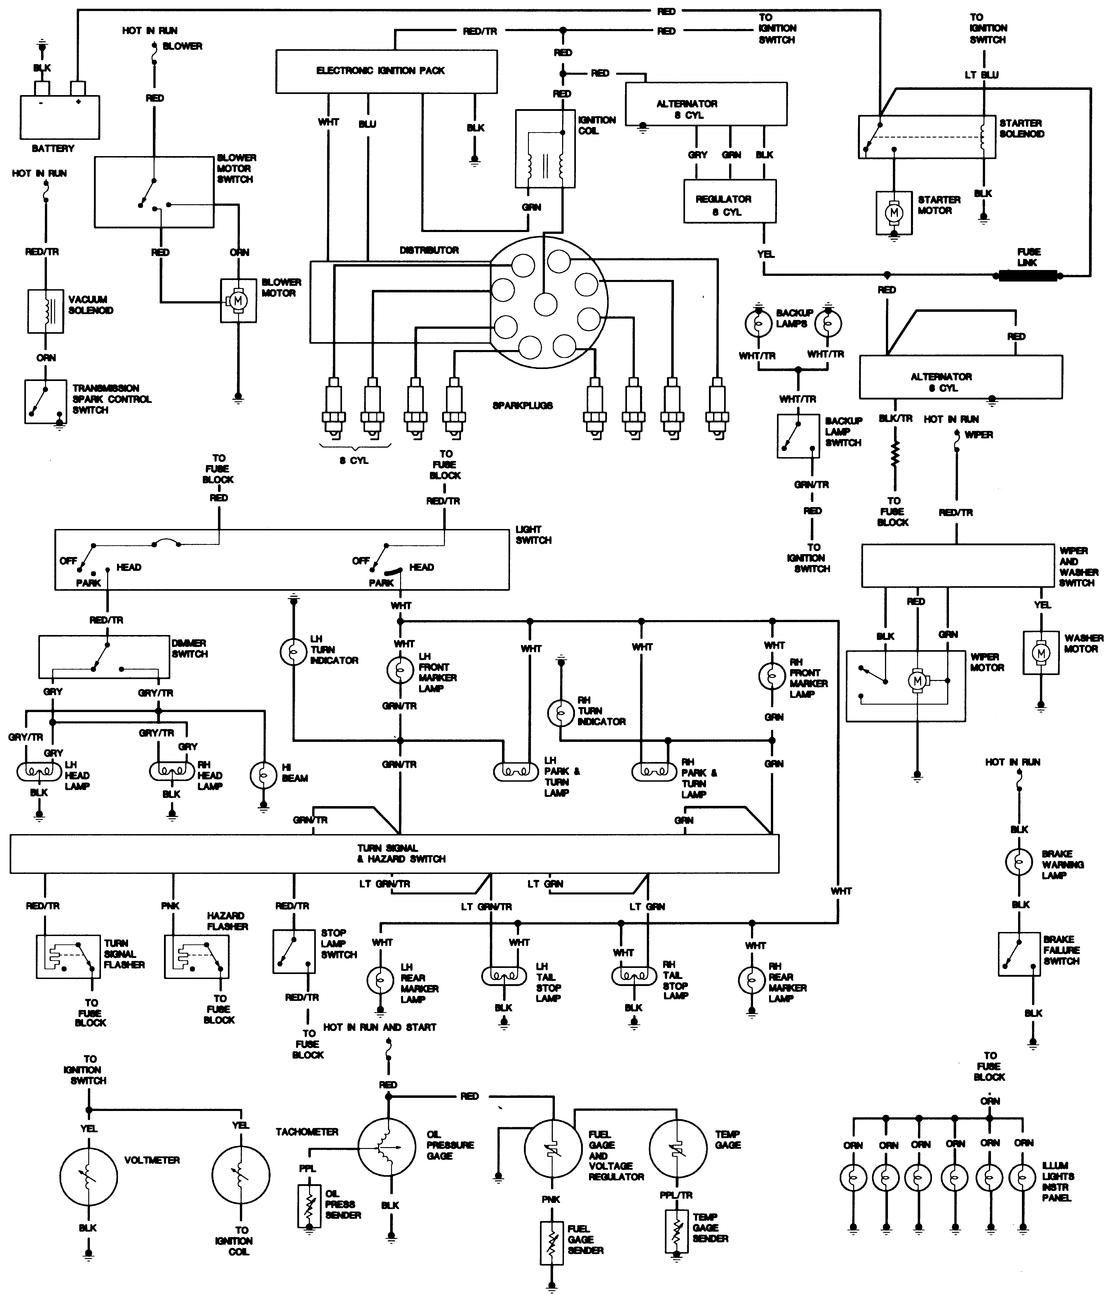 Wiring Diagram 1980 Cj7 Jeep